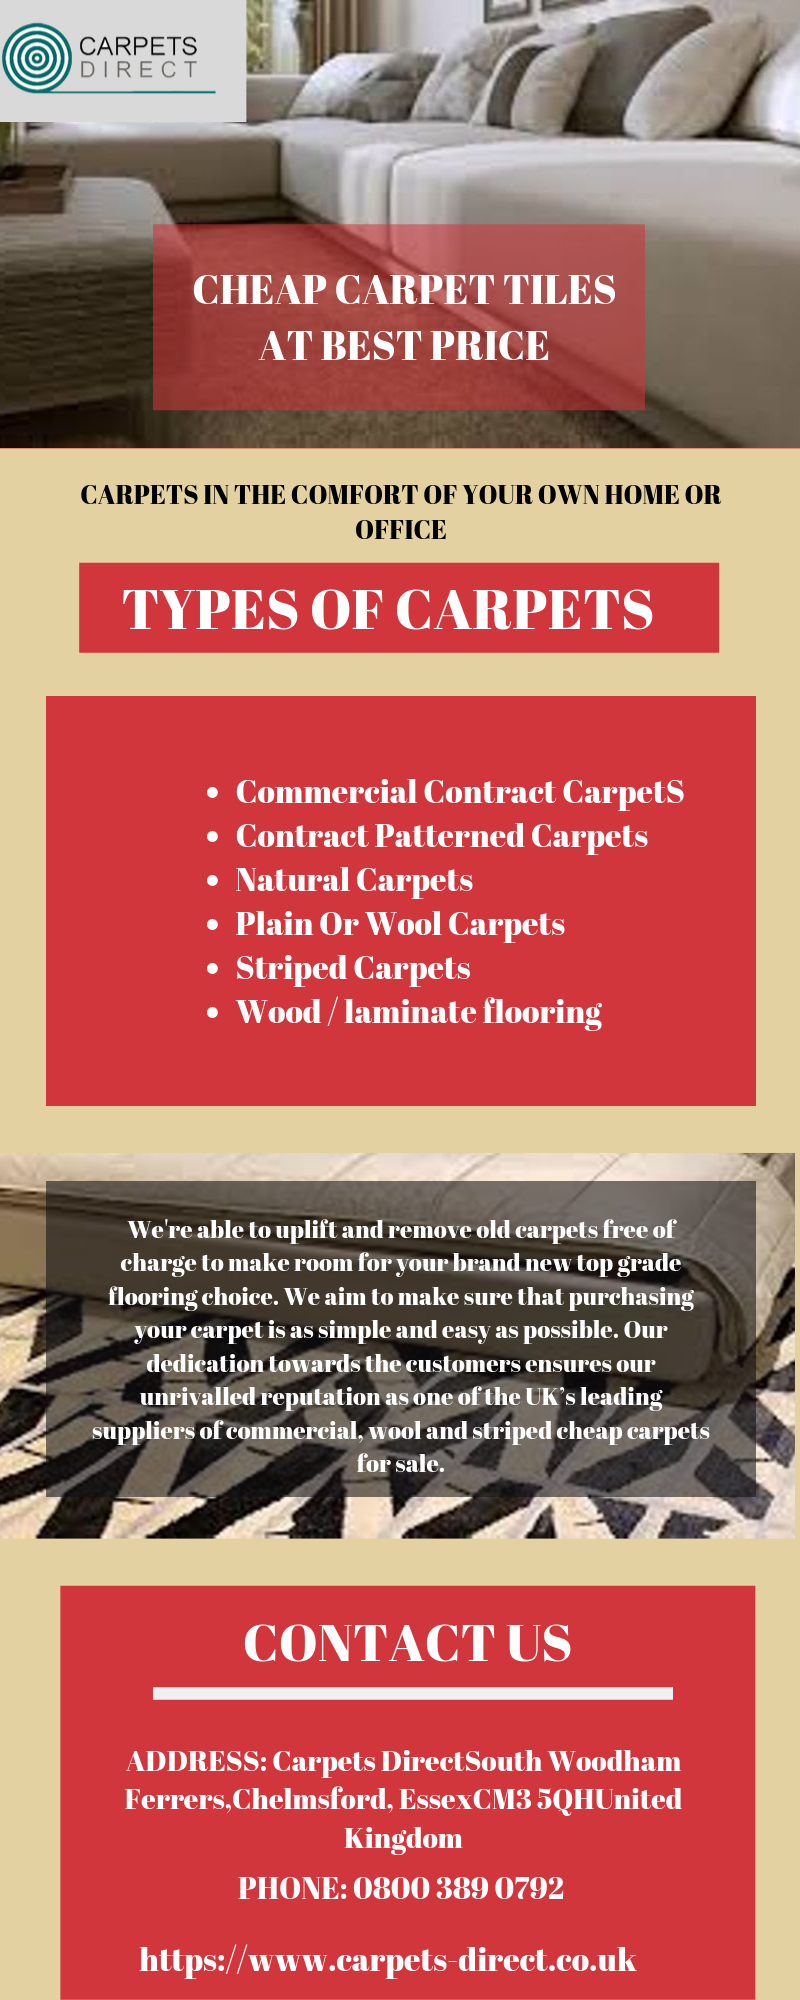 Cheap Carpet Tiles At Best Price In Uk In London Uplift And Remove Old Carpets And Move Furnitur Commercial Flooring Carpet Tiles Cheap Commercial Carpet Tiles